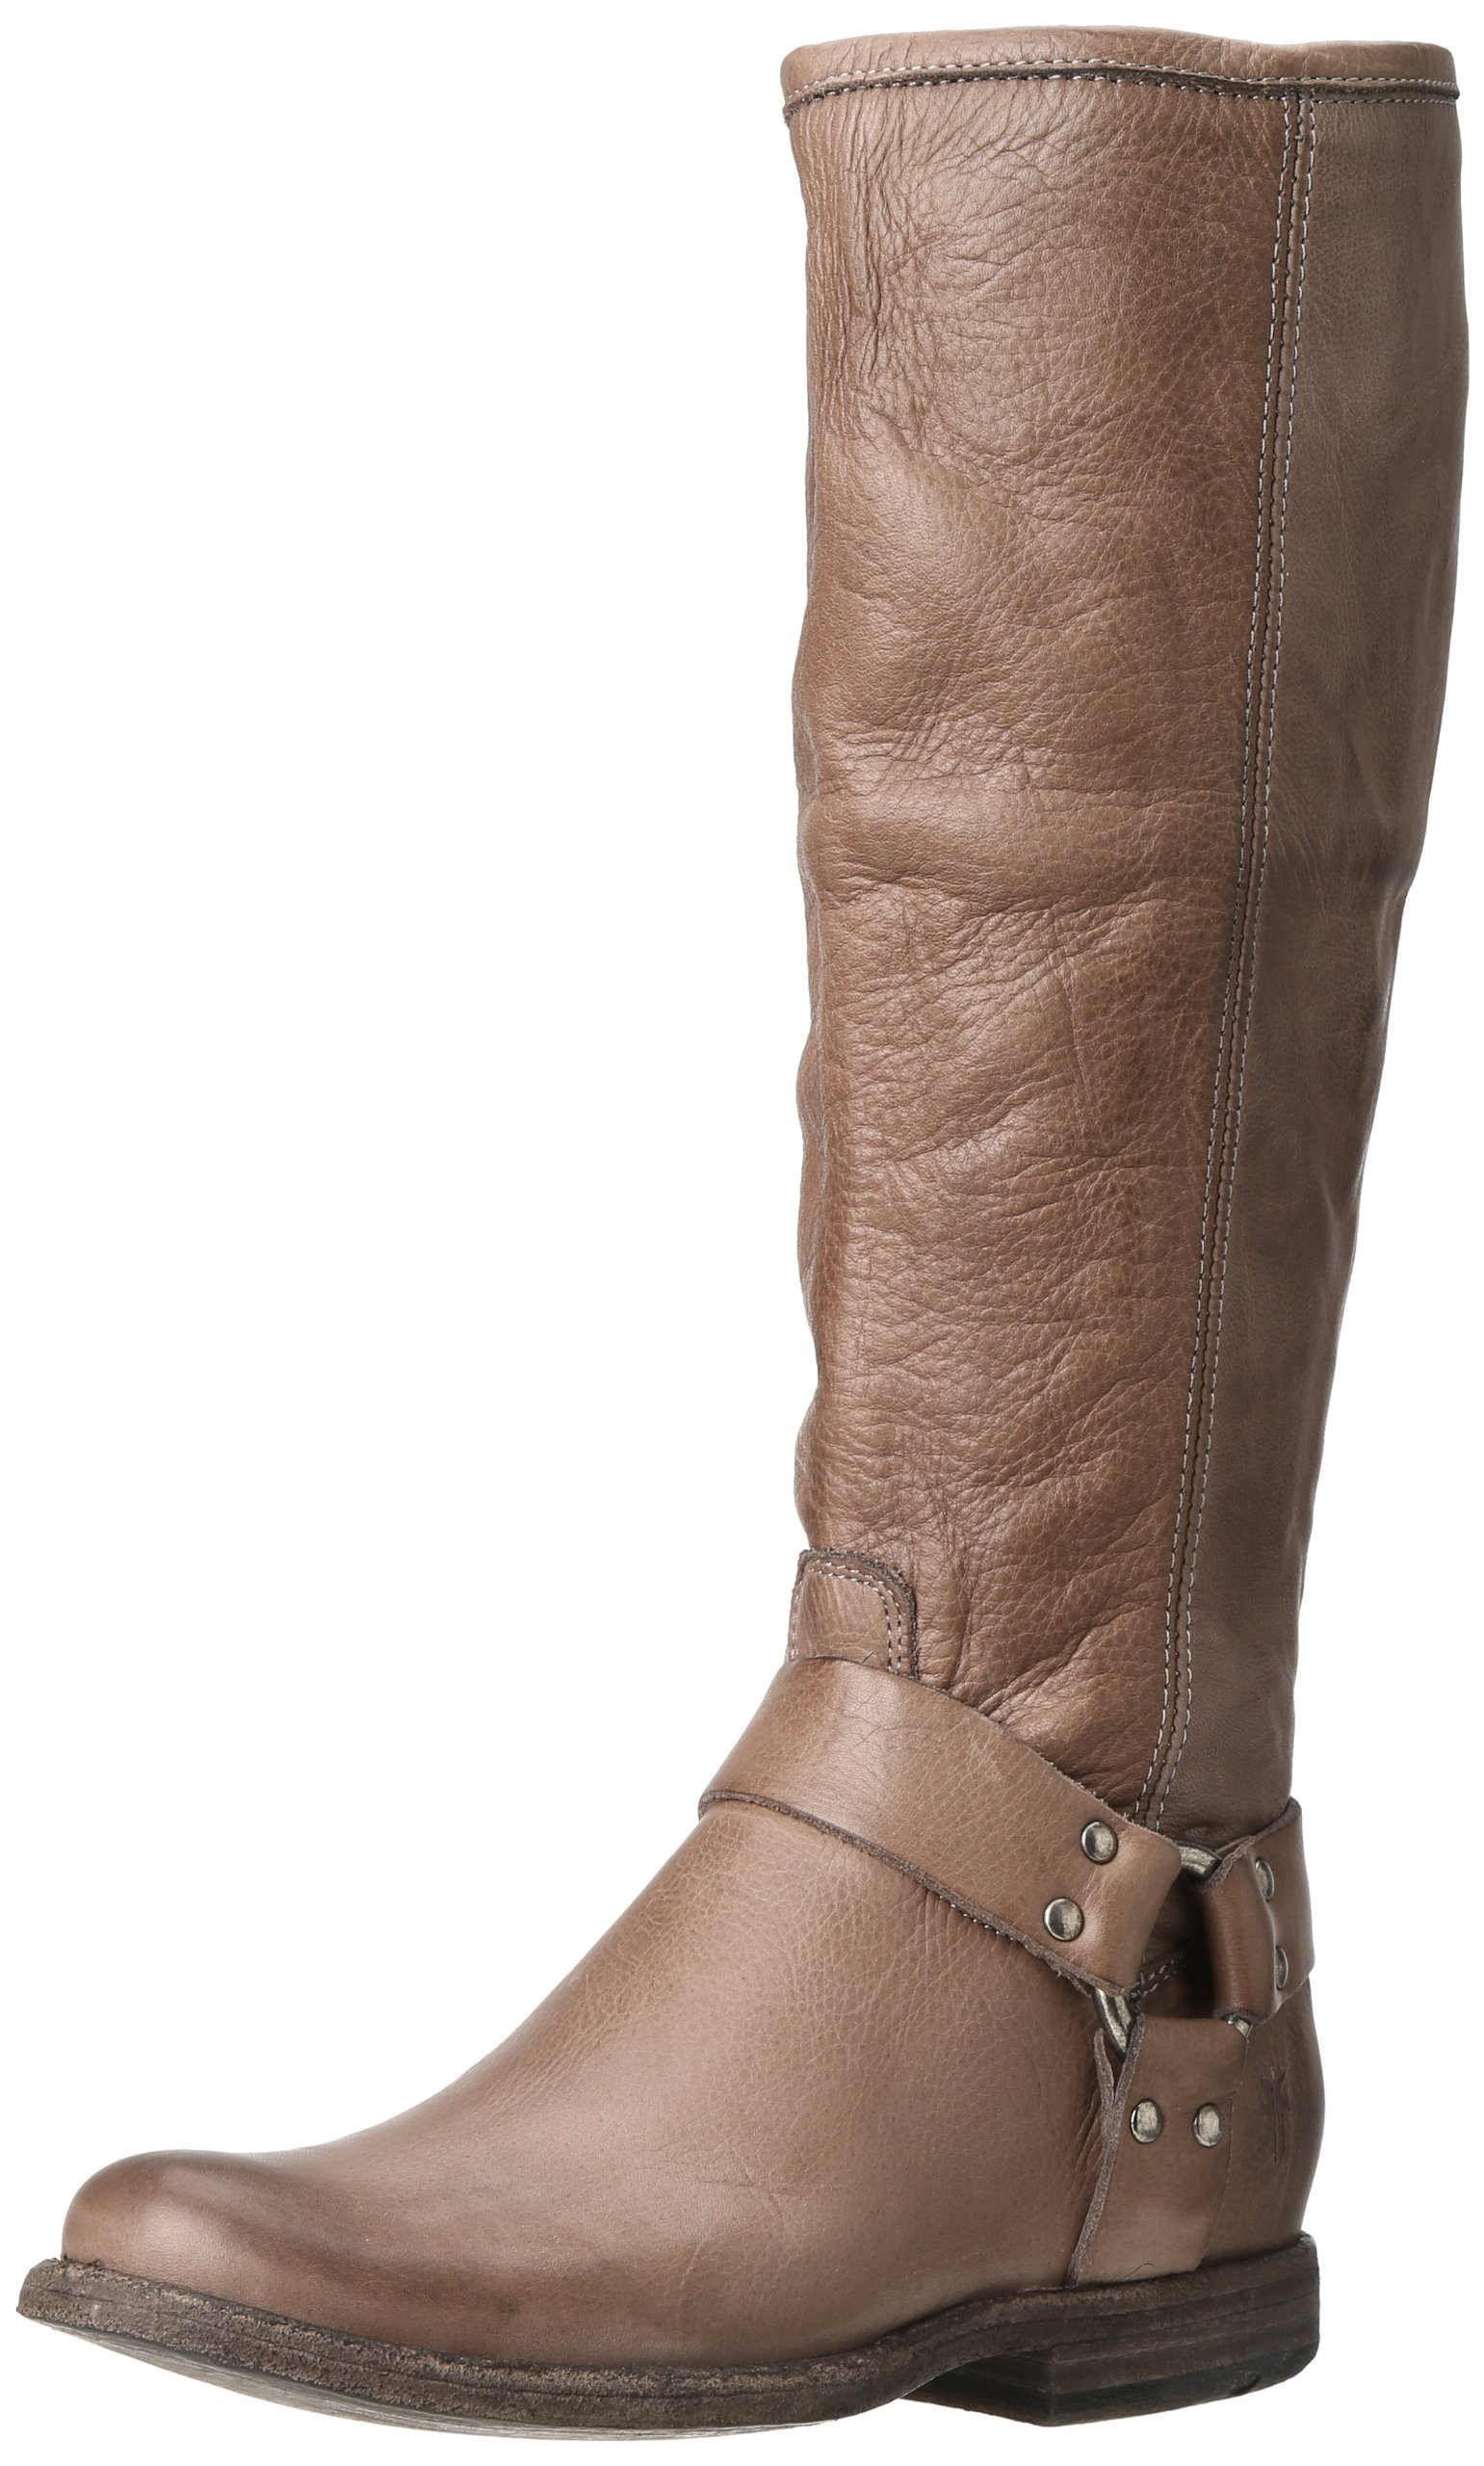 FRYE Women's Phillip Harness Tall Boot, Grey Soft Vintage Leather, 7 M US